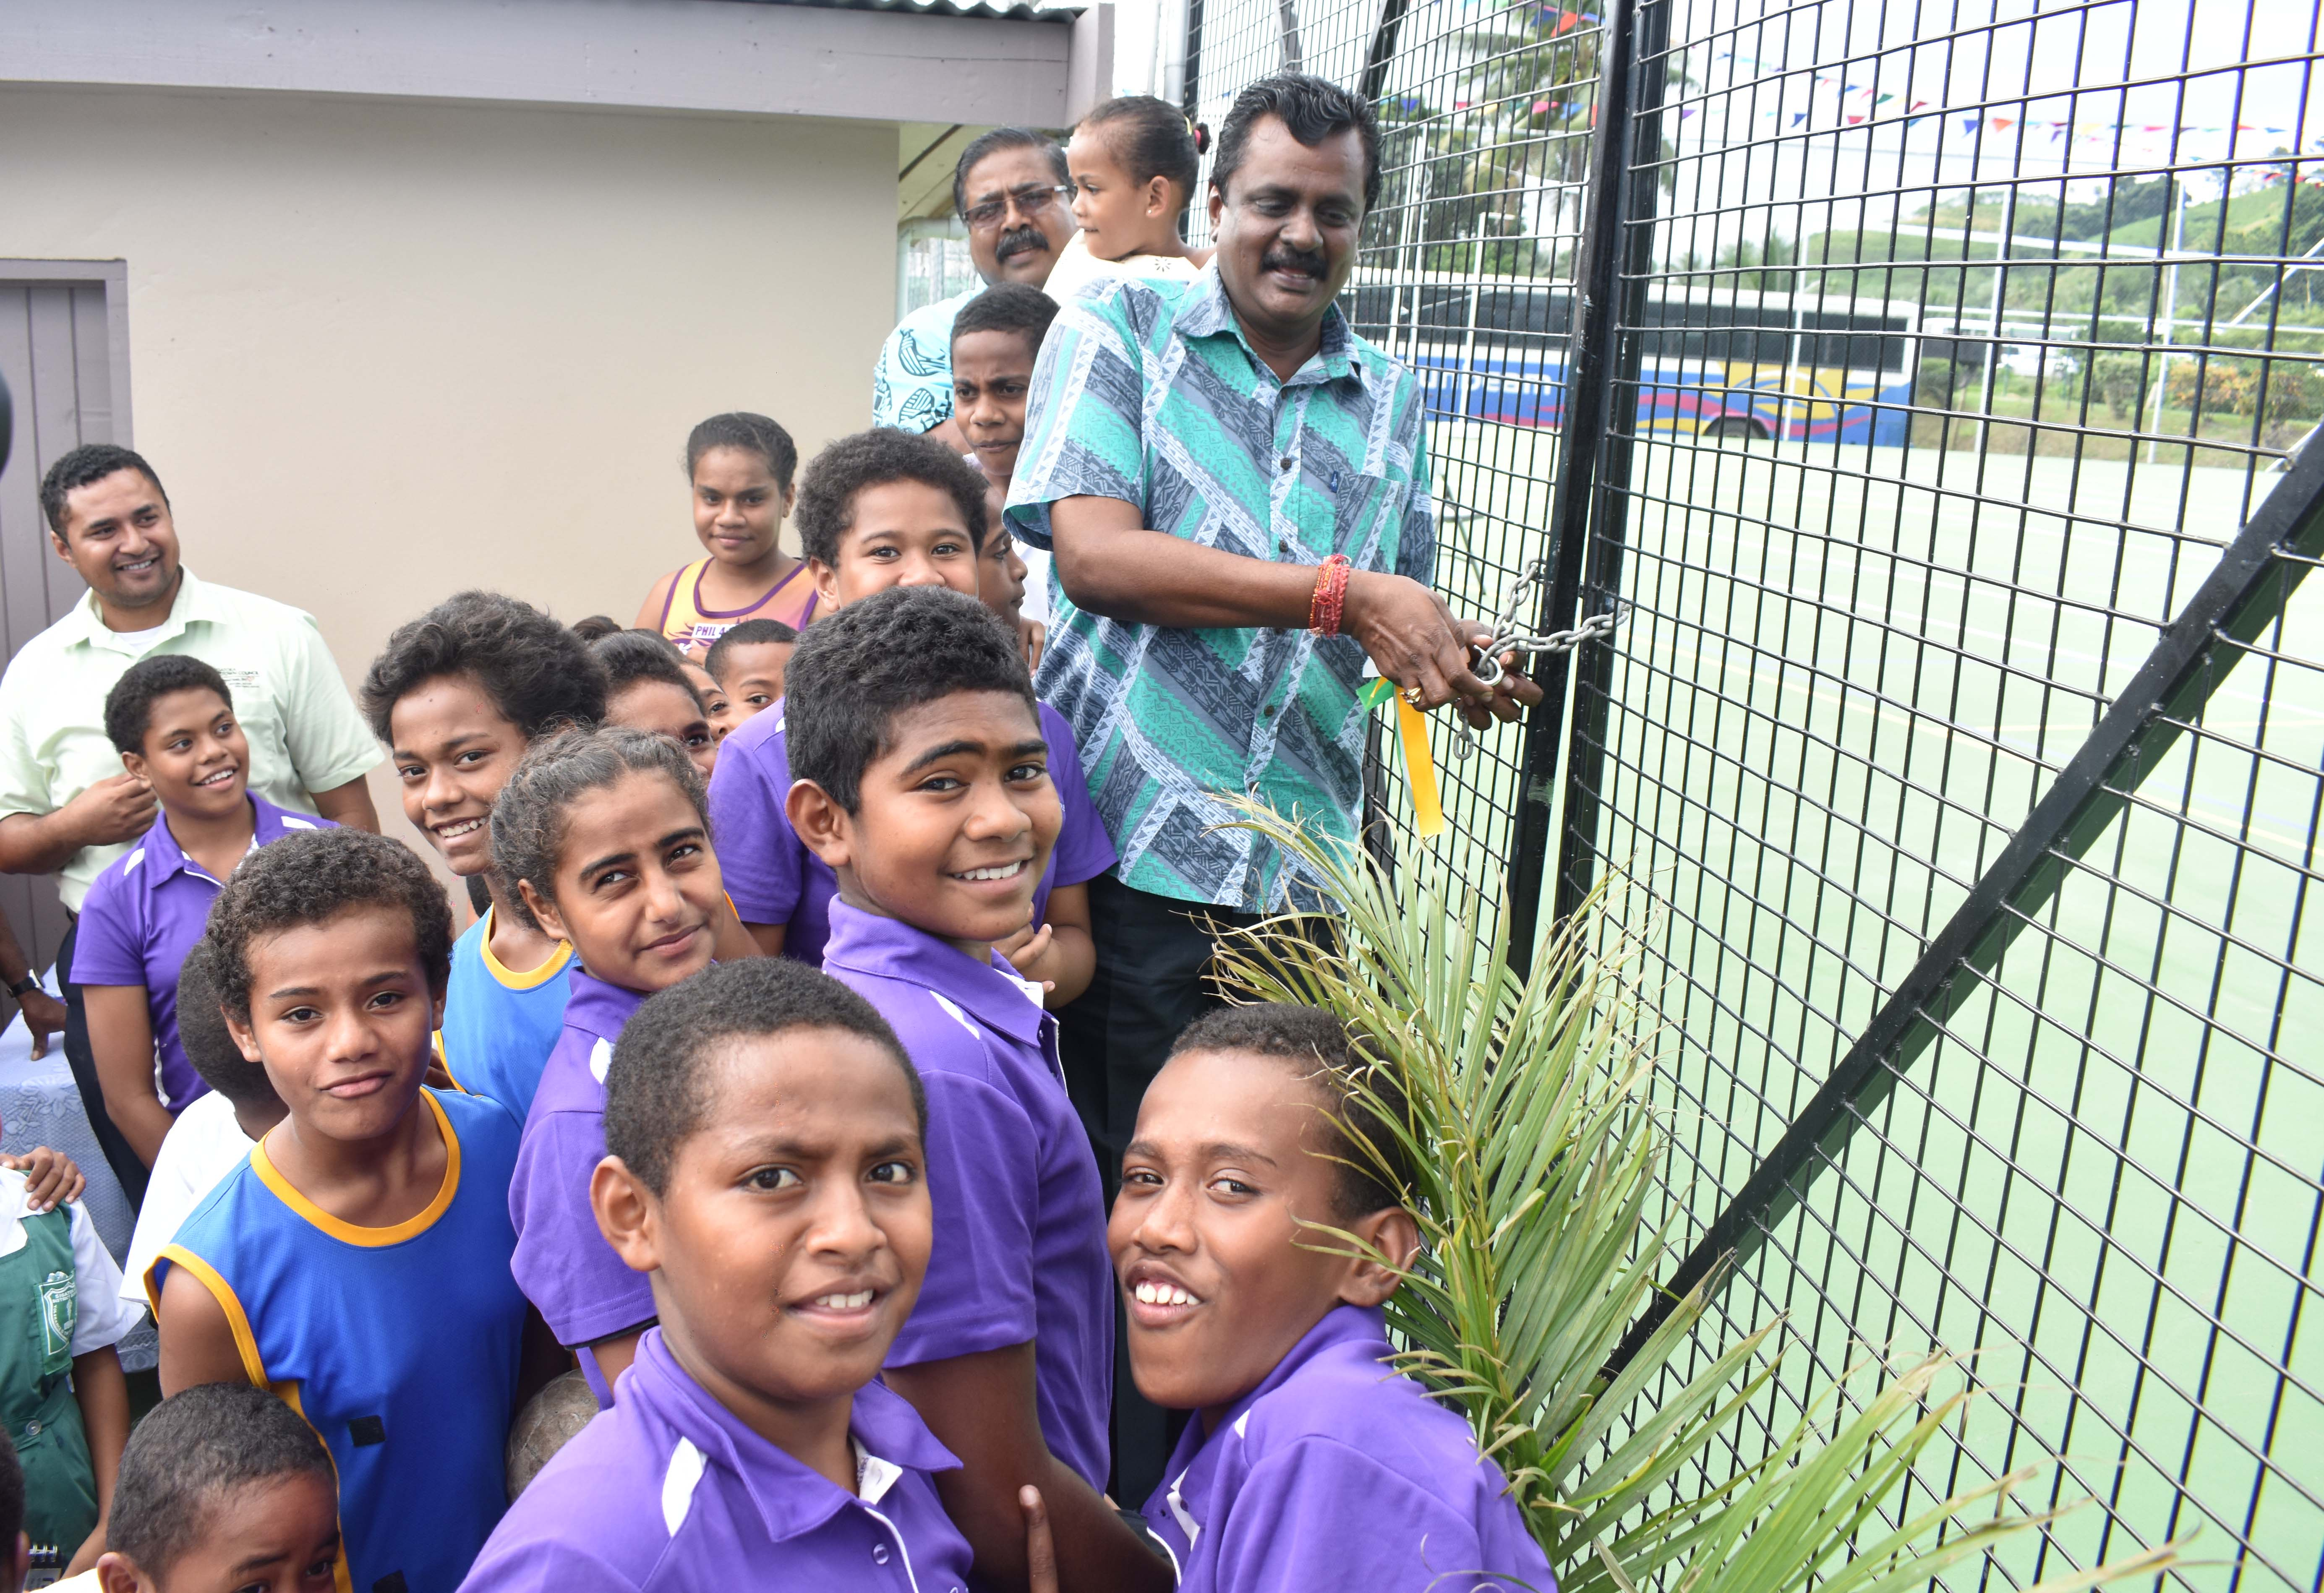 Minister for Local Government, Housing, Environment, Infrastructure and Transport Praveen Bala with students at the official opening of the Multi purpose court in Sigatoka yesterday. Photo: WAISEA NASOKIA